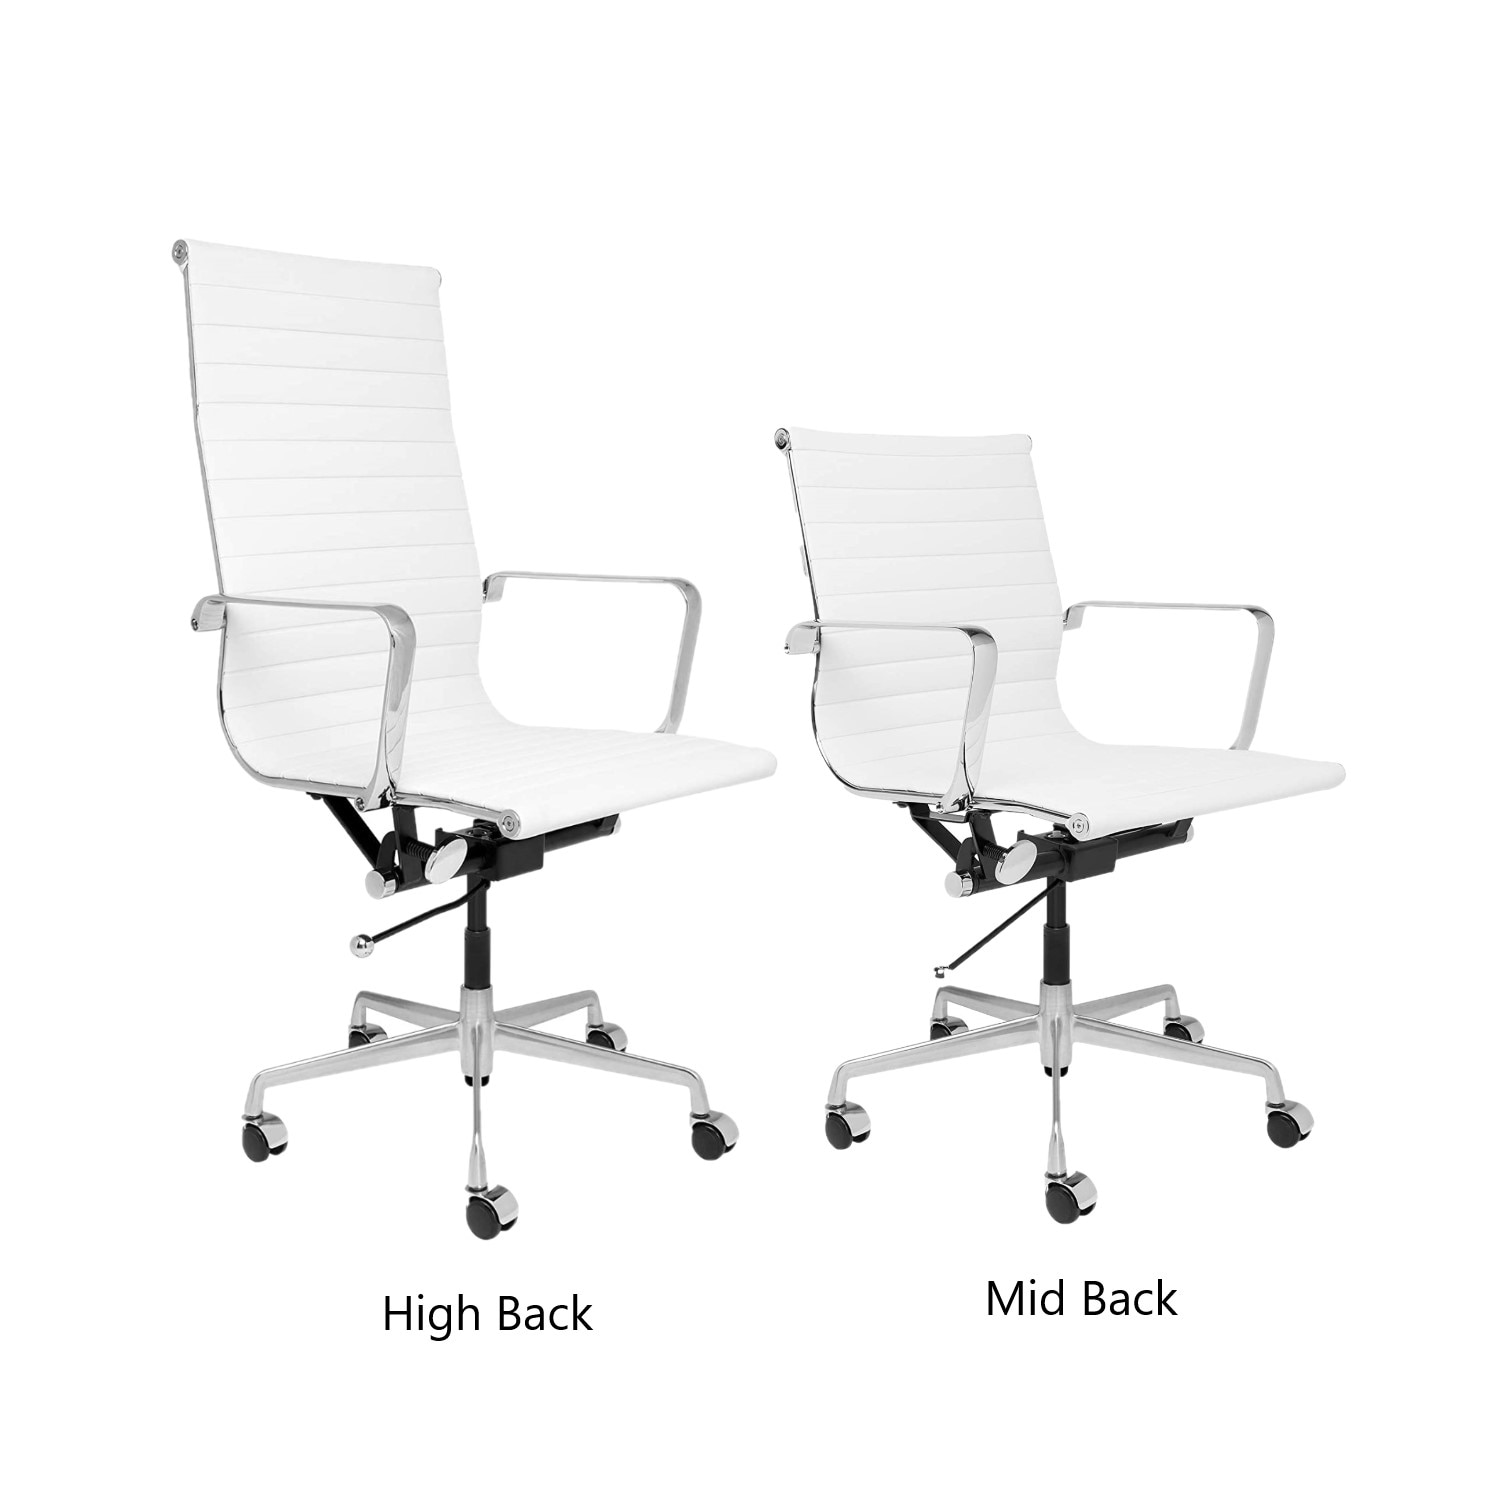 H92426492d0004b459e8ac74ee31c6c08Y - High Back Aluminium Group Office Chair Replica Swivel Chair with Armrests Chromed Base Gaming Chair for Office Meeting Room